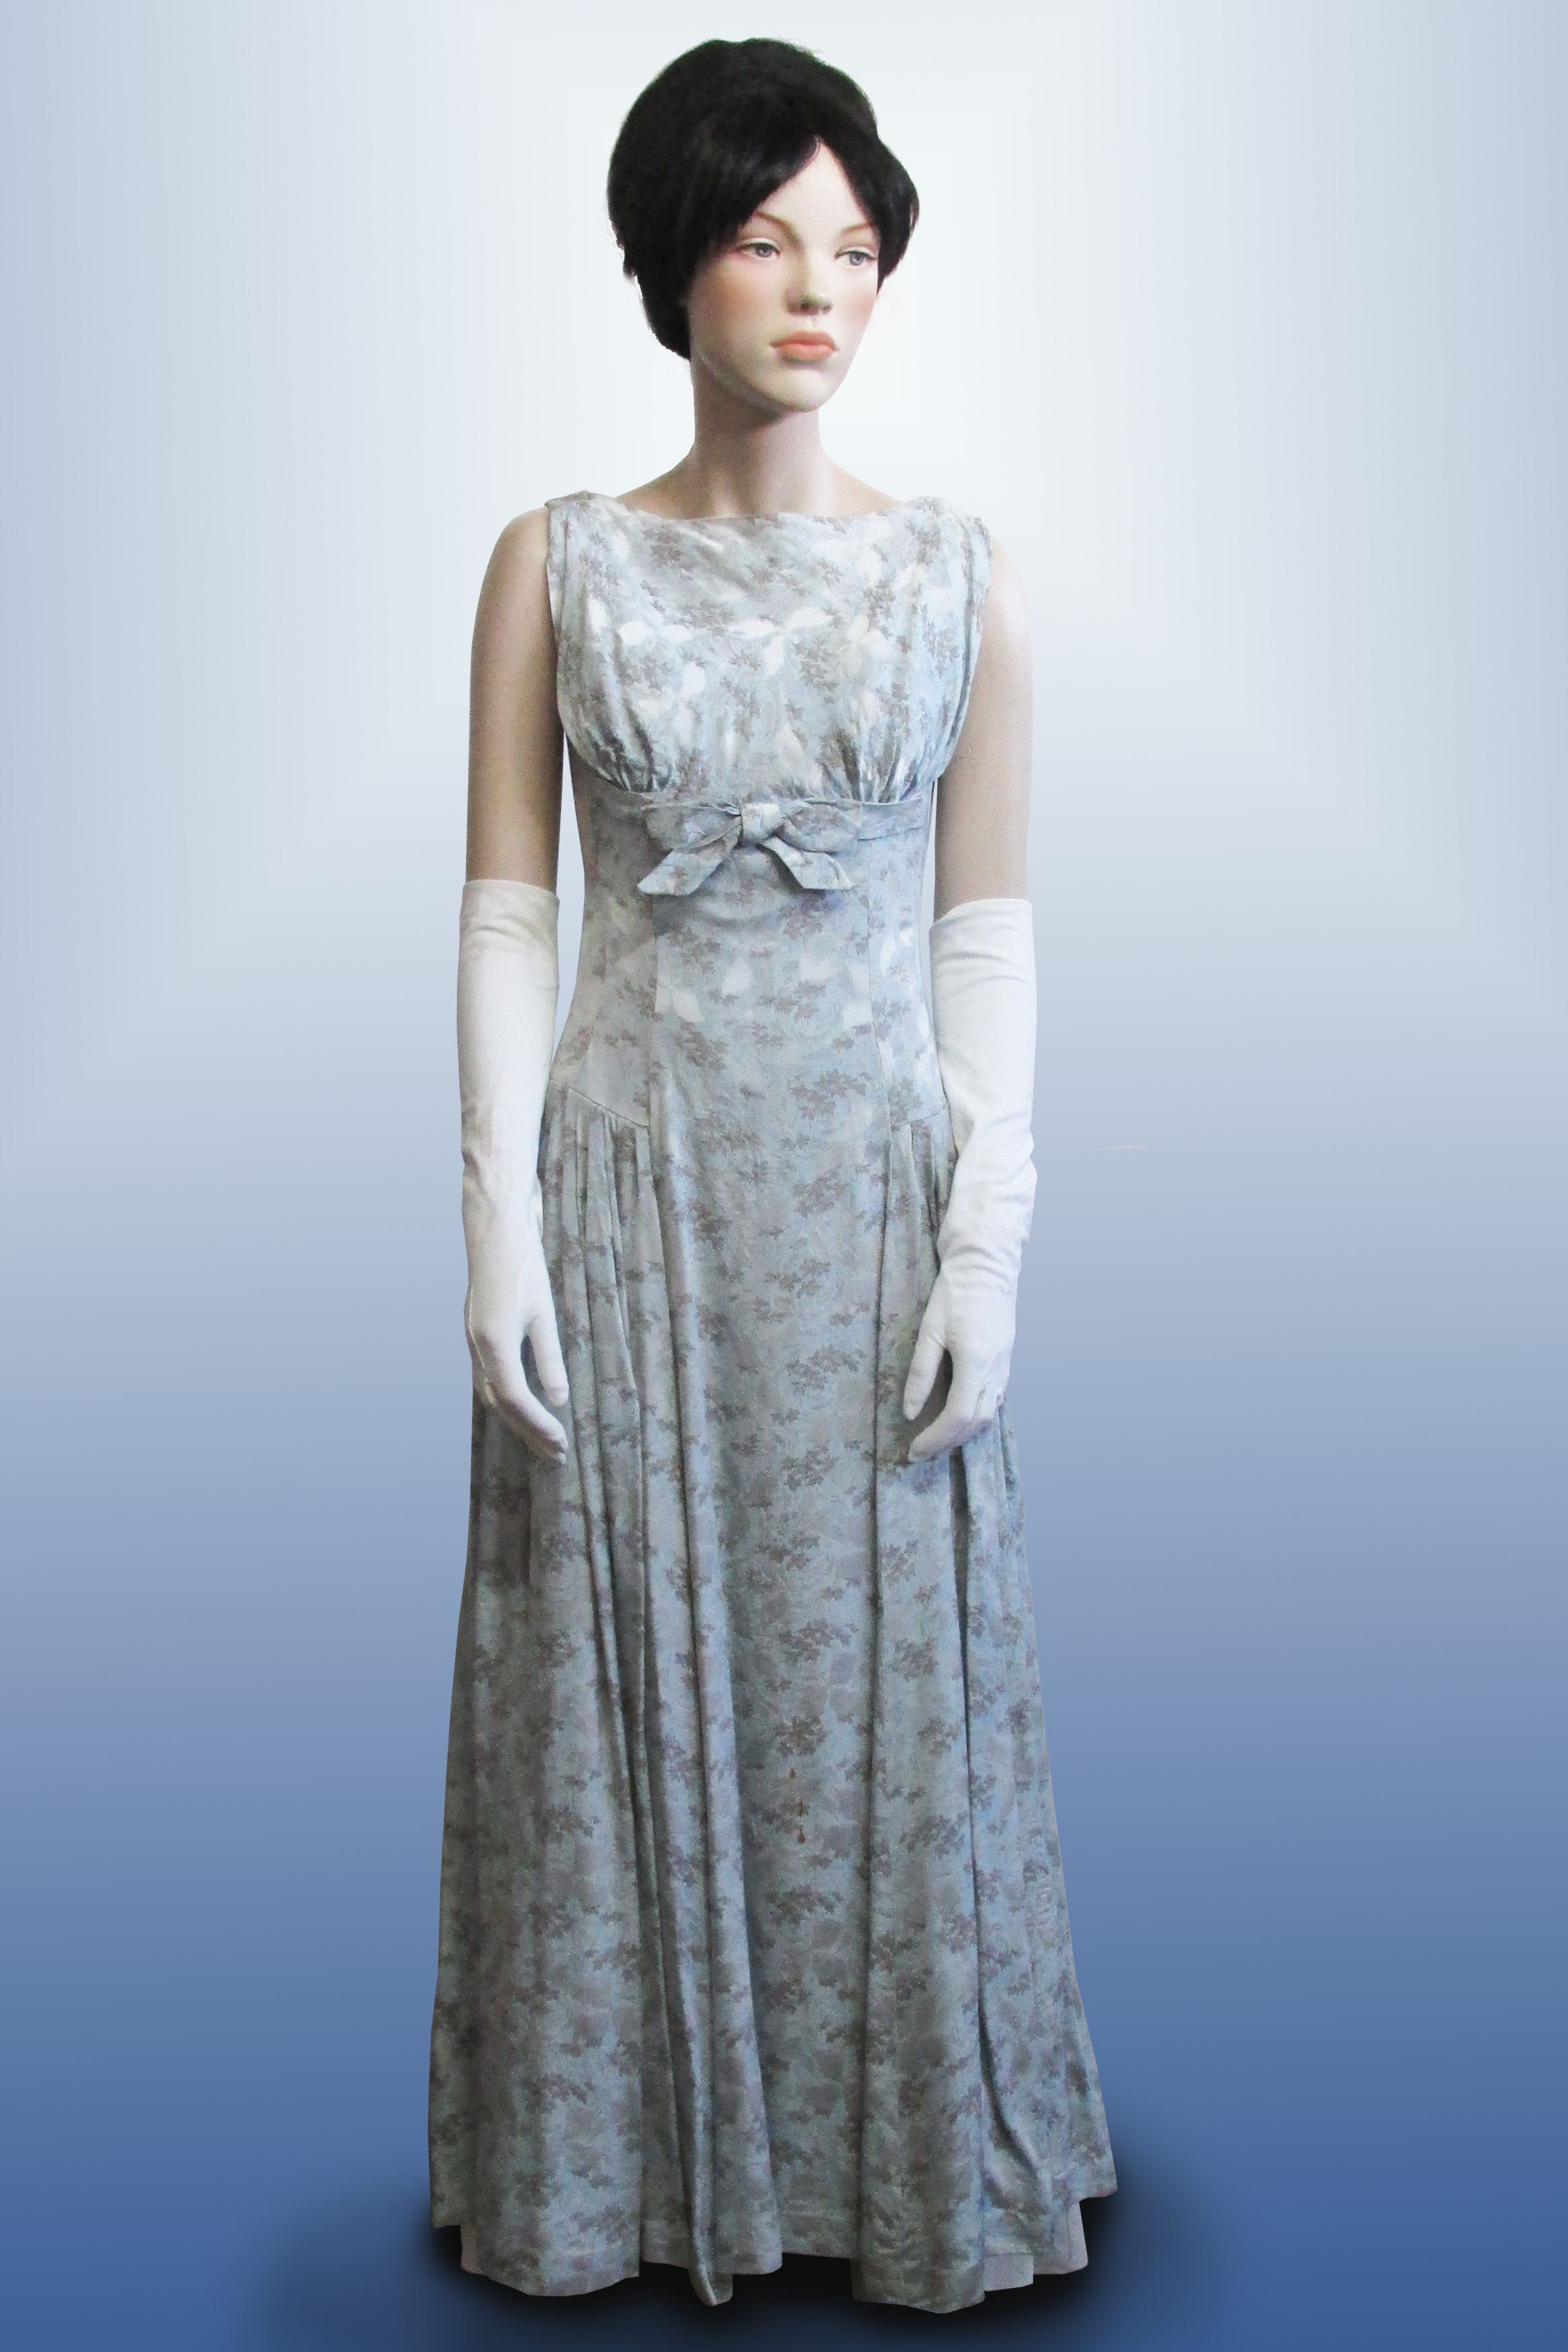 Evening Dress Pale Blue Brocade 1950s